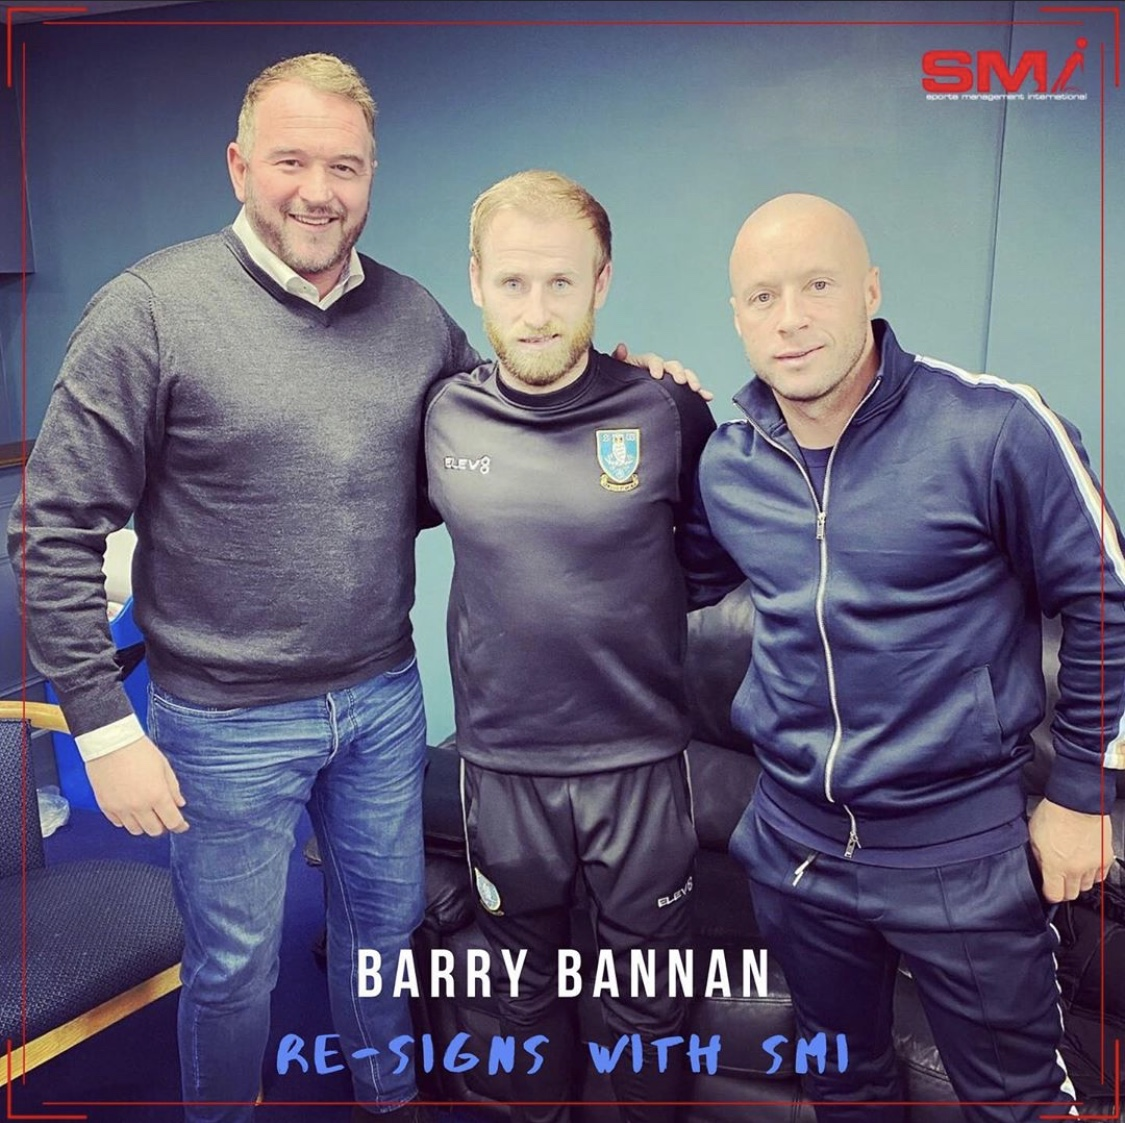 Barry Bannan re-signs with SMI